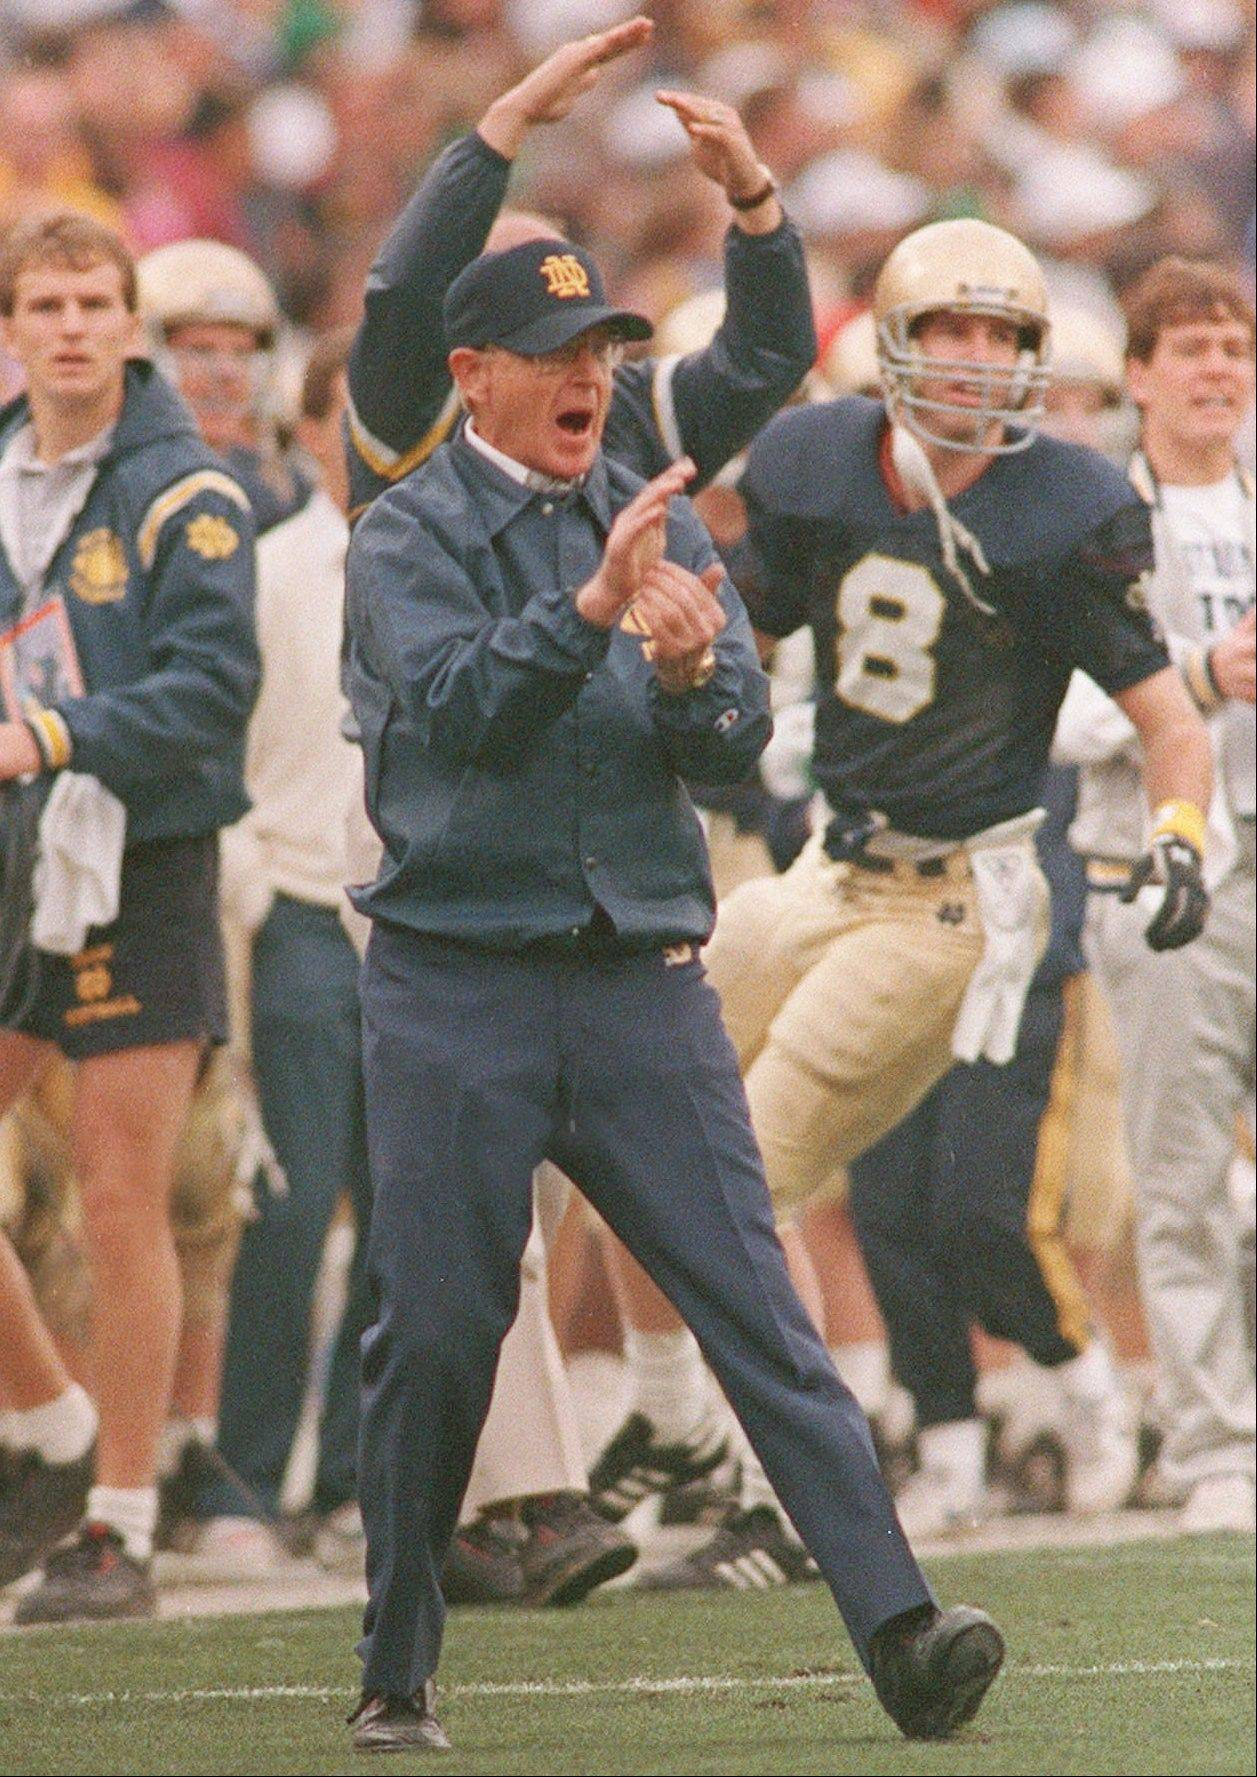 Notre Dame coach Lou Holtz yells encouragement to the Irish against West Virginia in the Fiesta Bowl in Tempe, Ariz.